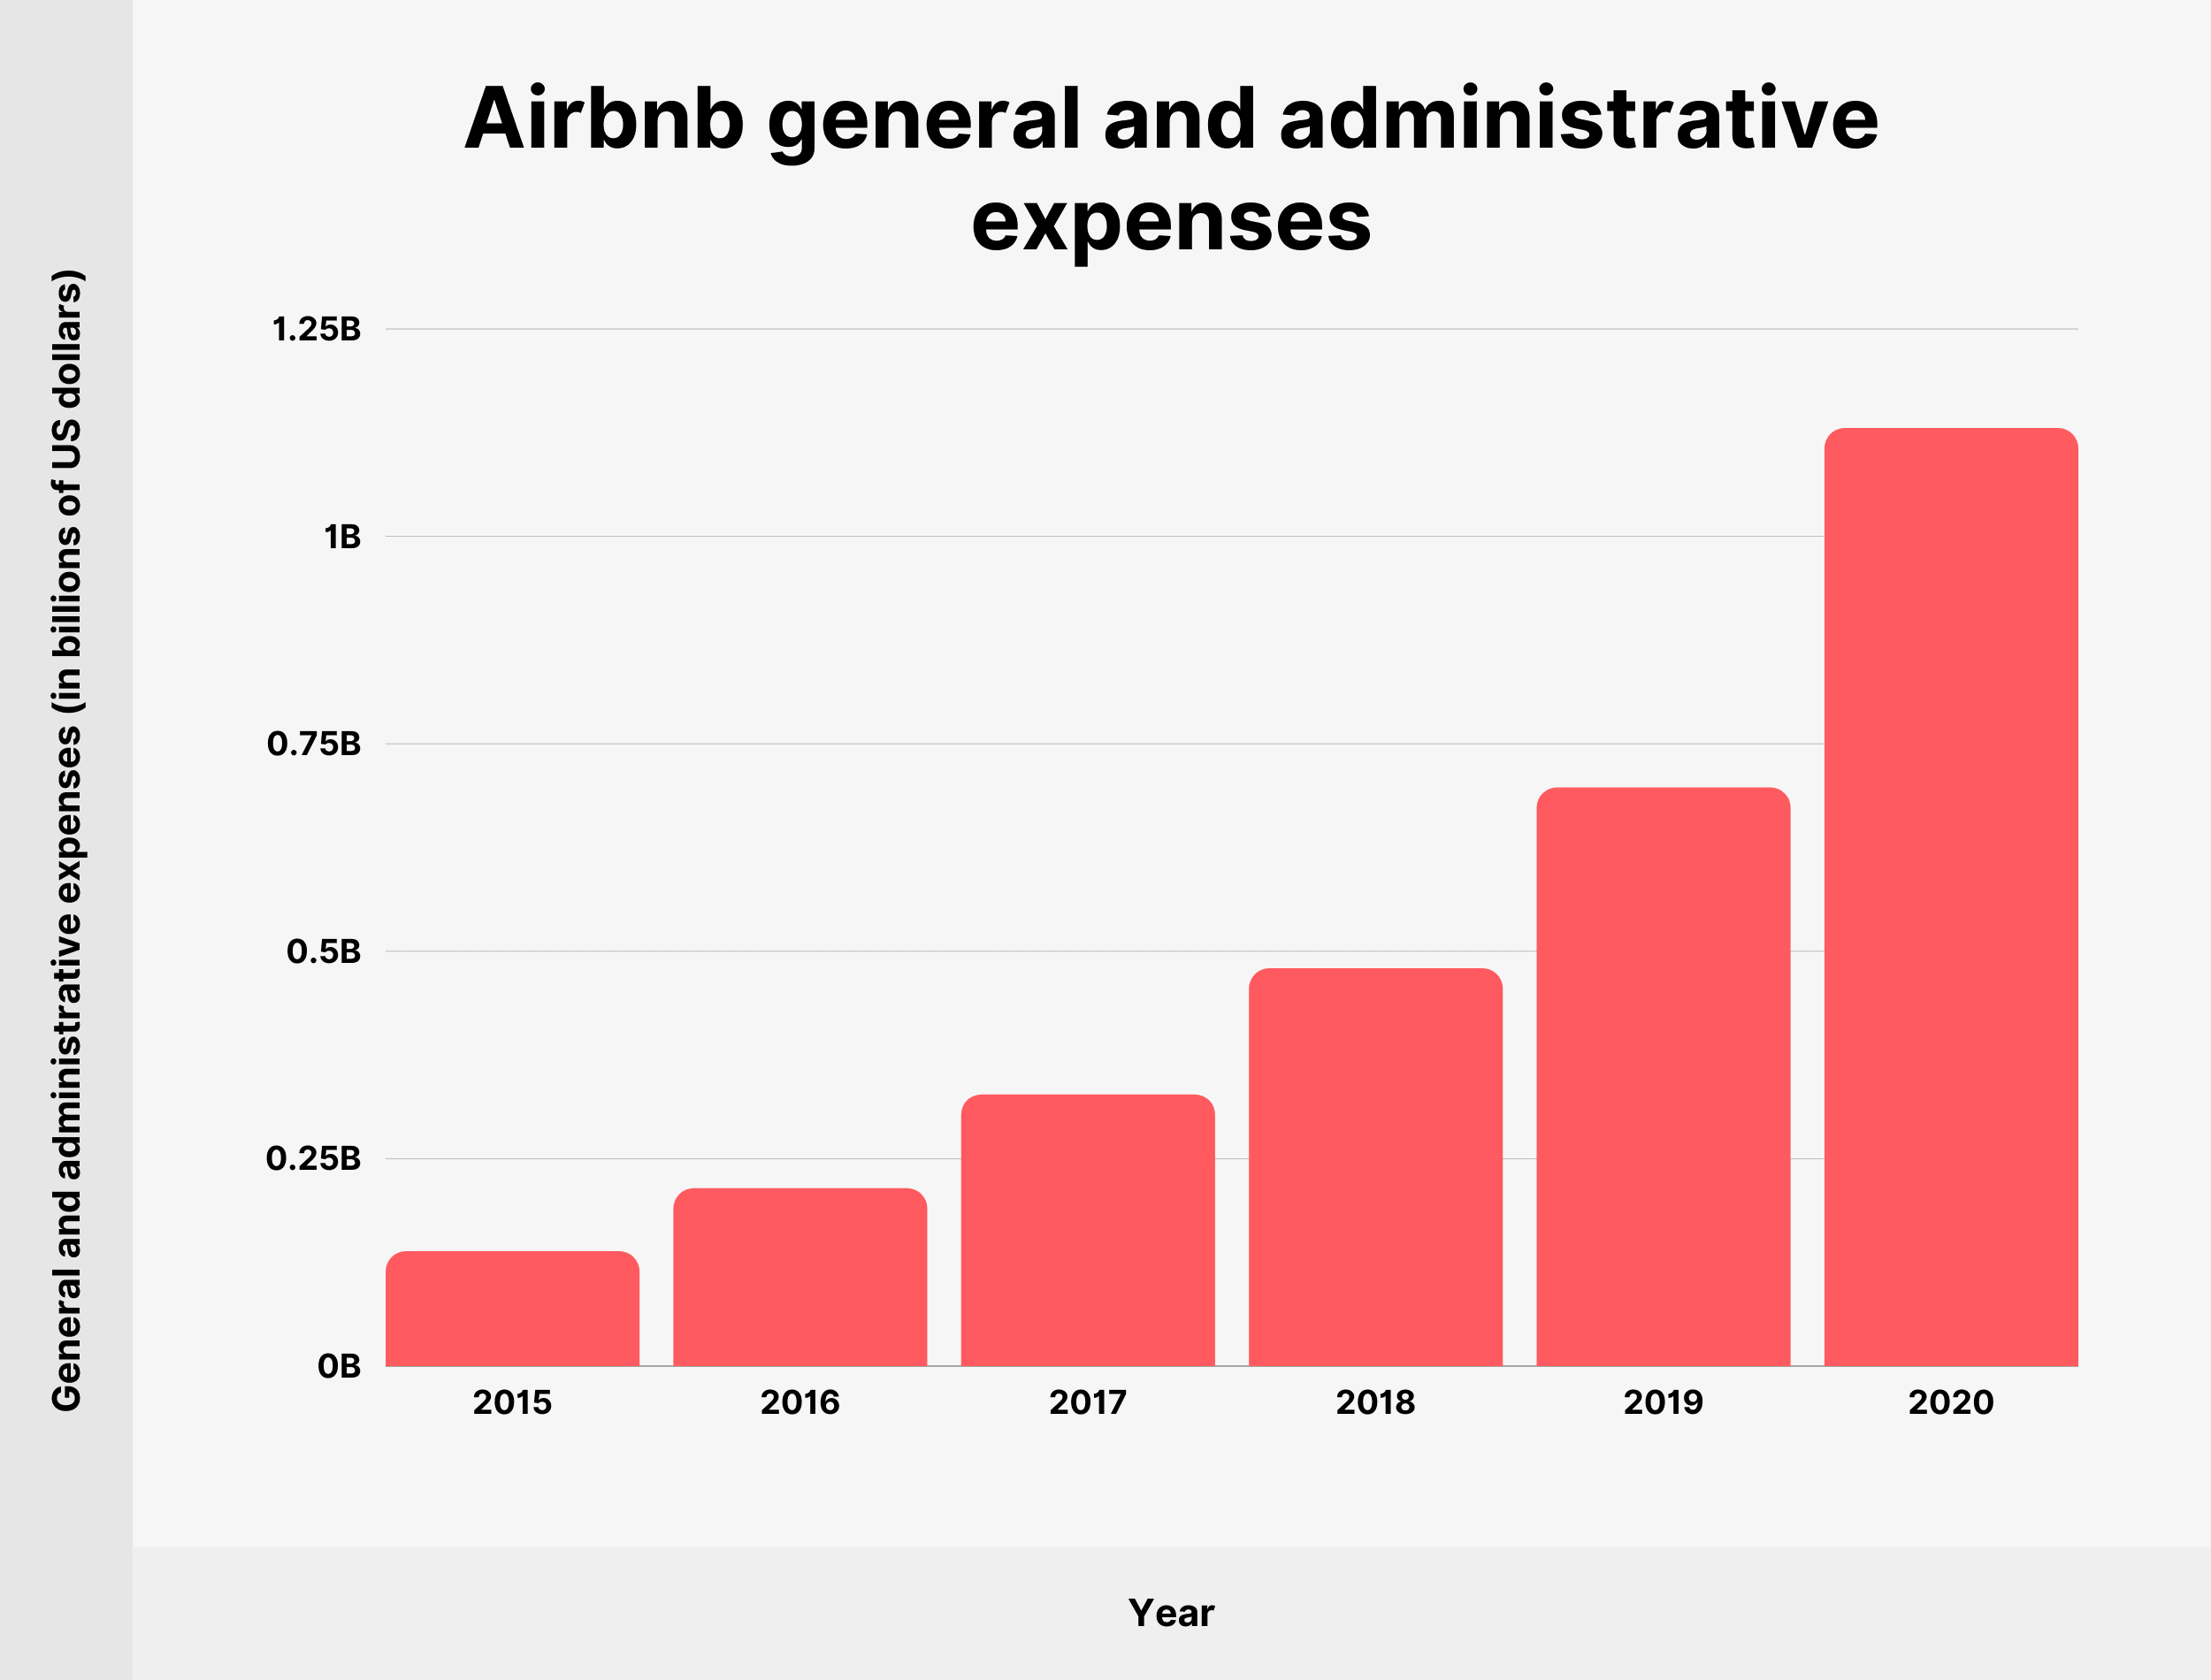 Airbnb general and administrative expenses